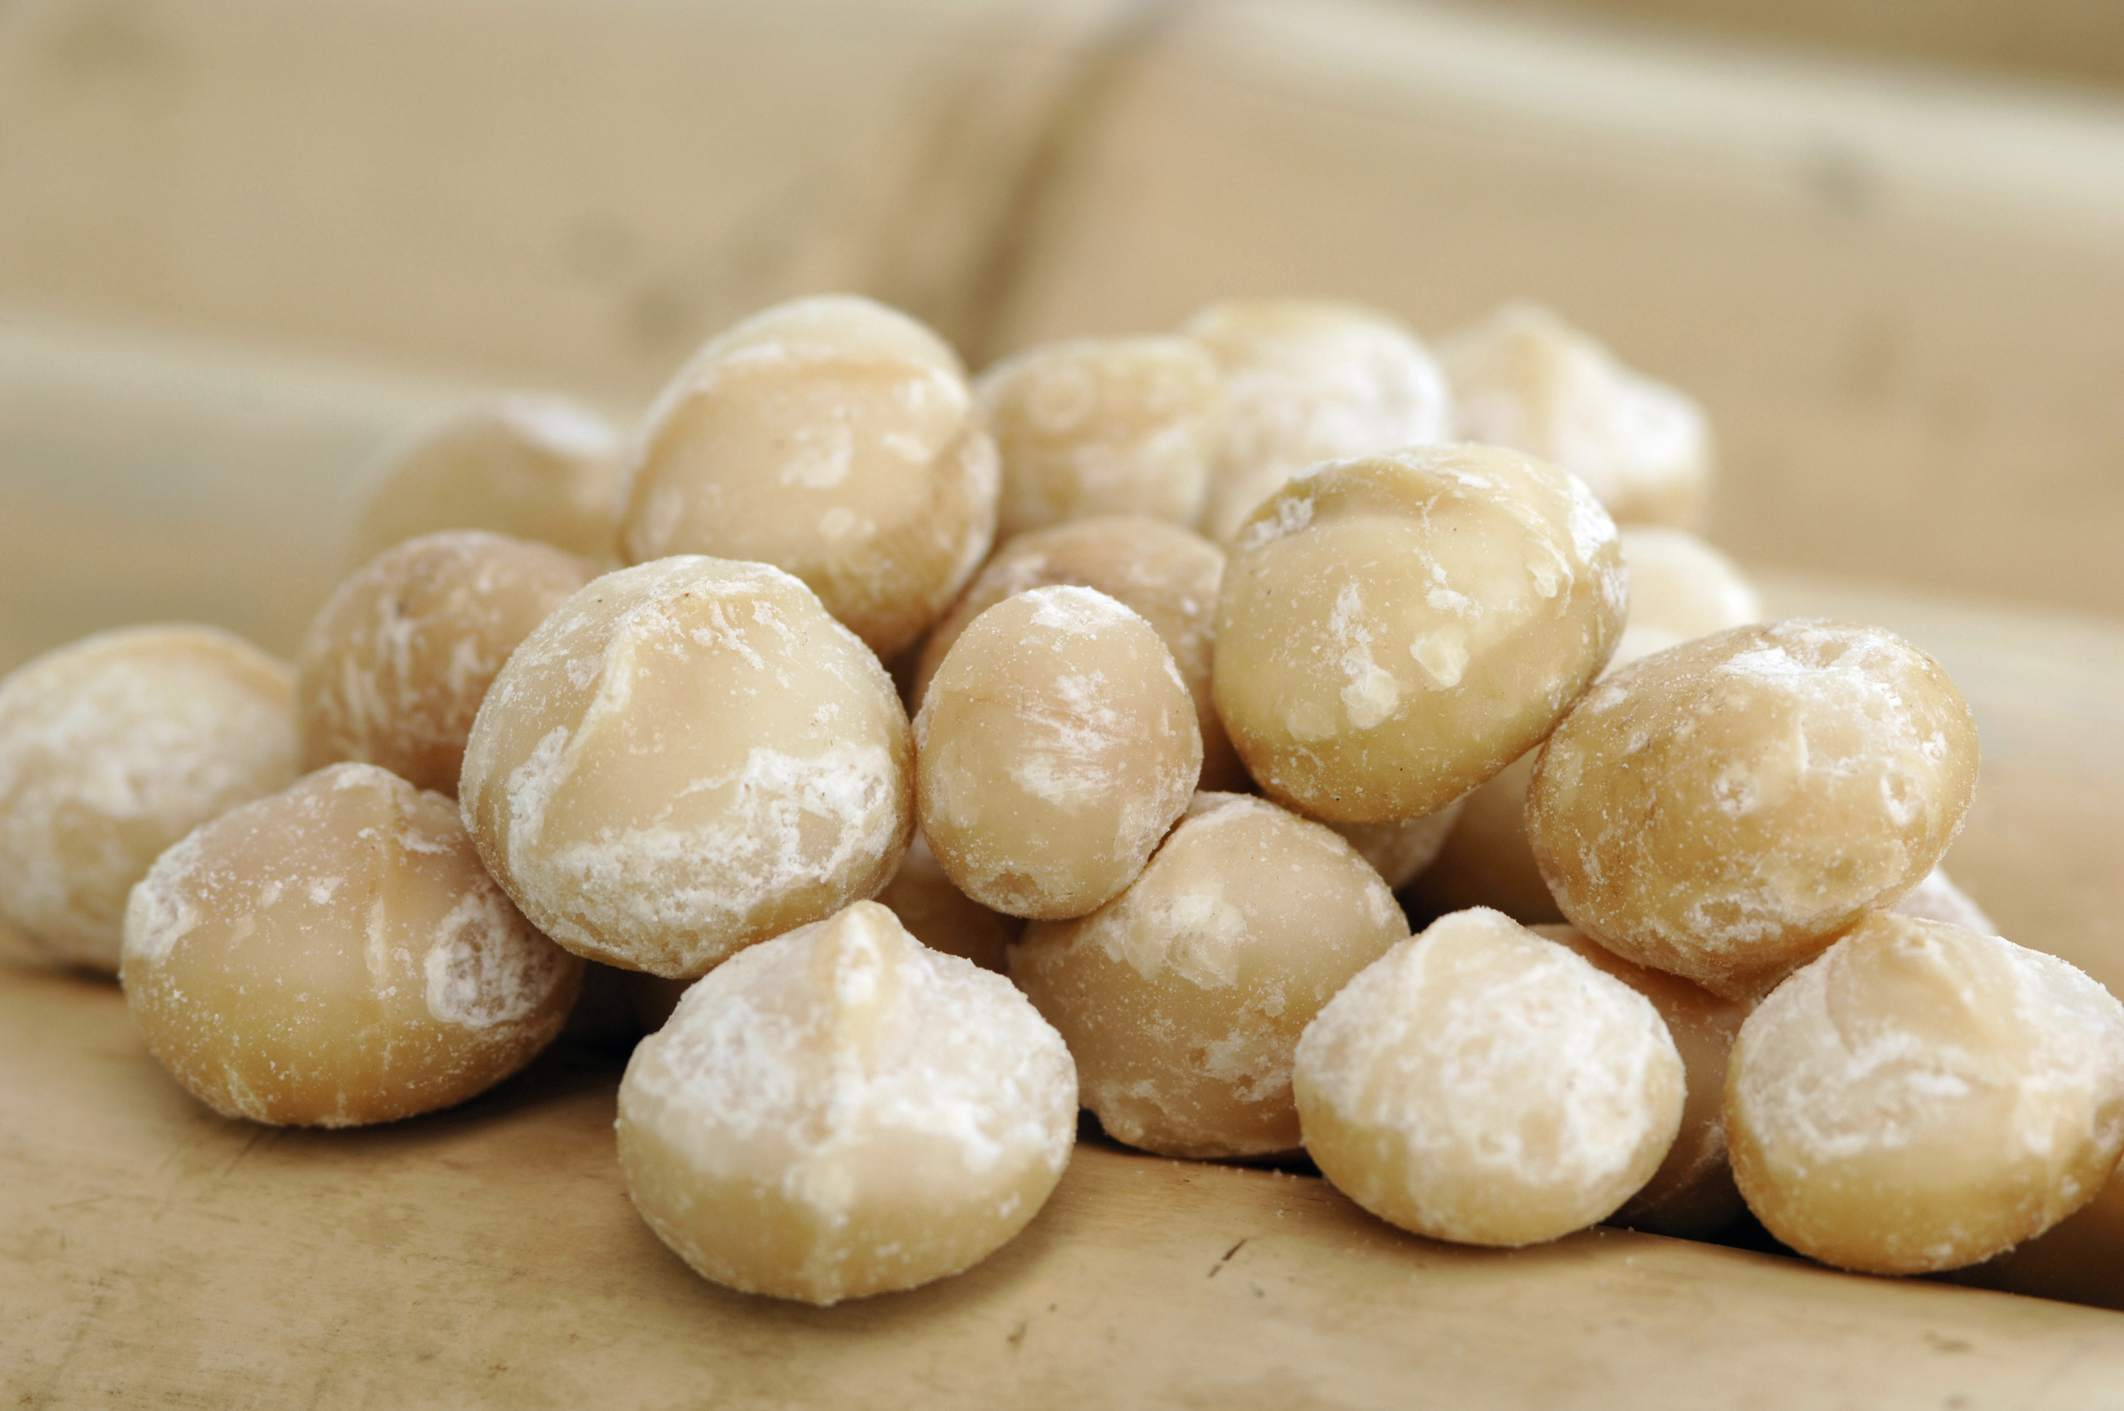 A pile of macadamia nuts.